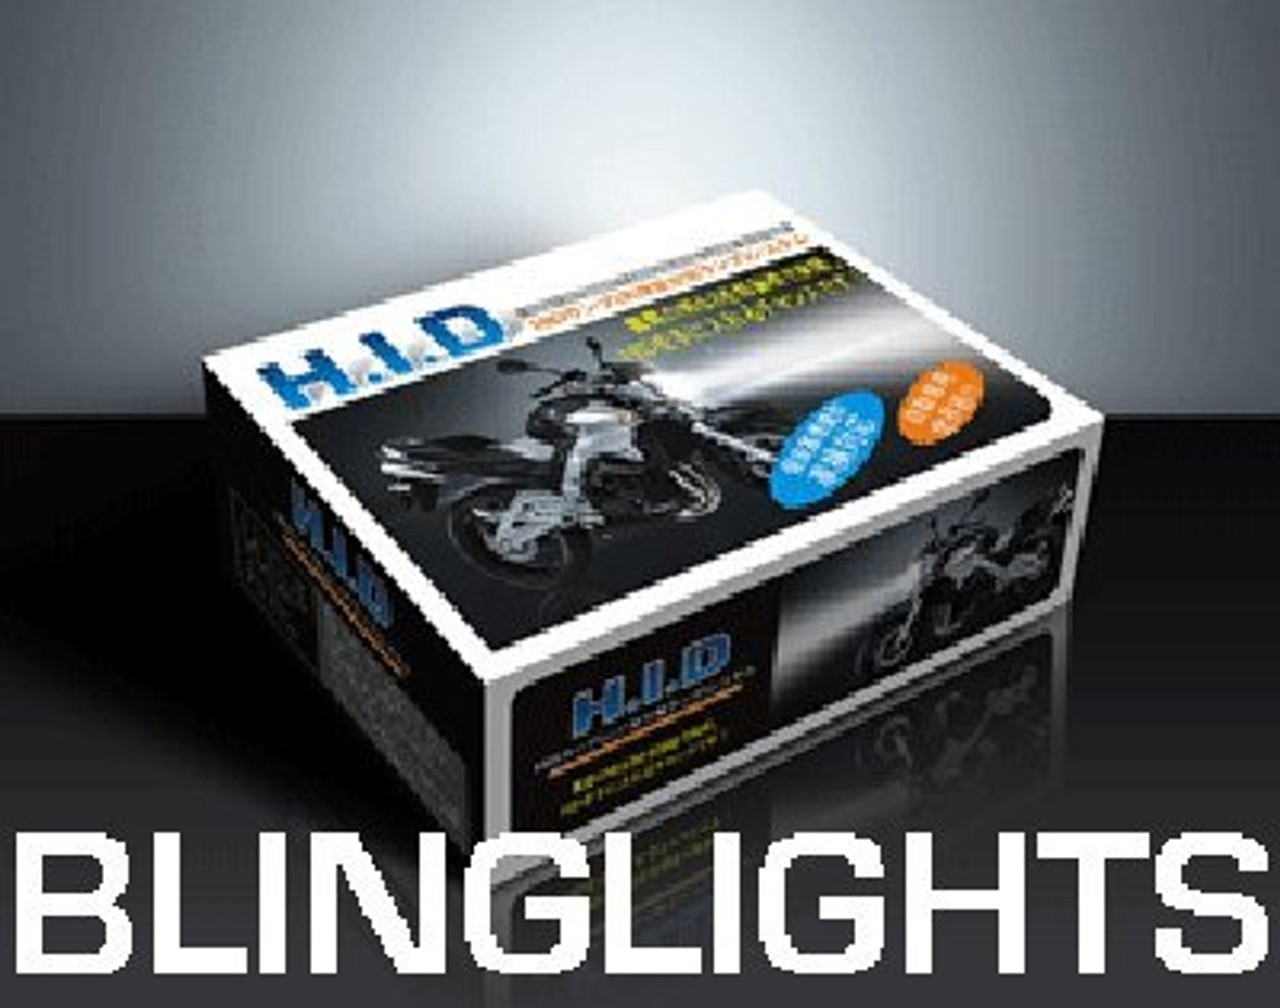 1993-2009 HARLEY-DAVIDSON DYNA LOW RIDER HID HEAD LIGHT LAMP 2001 2002 2003 2004 2005 2006 2007 2008